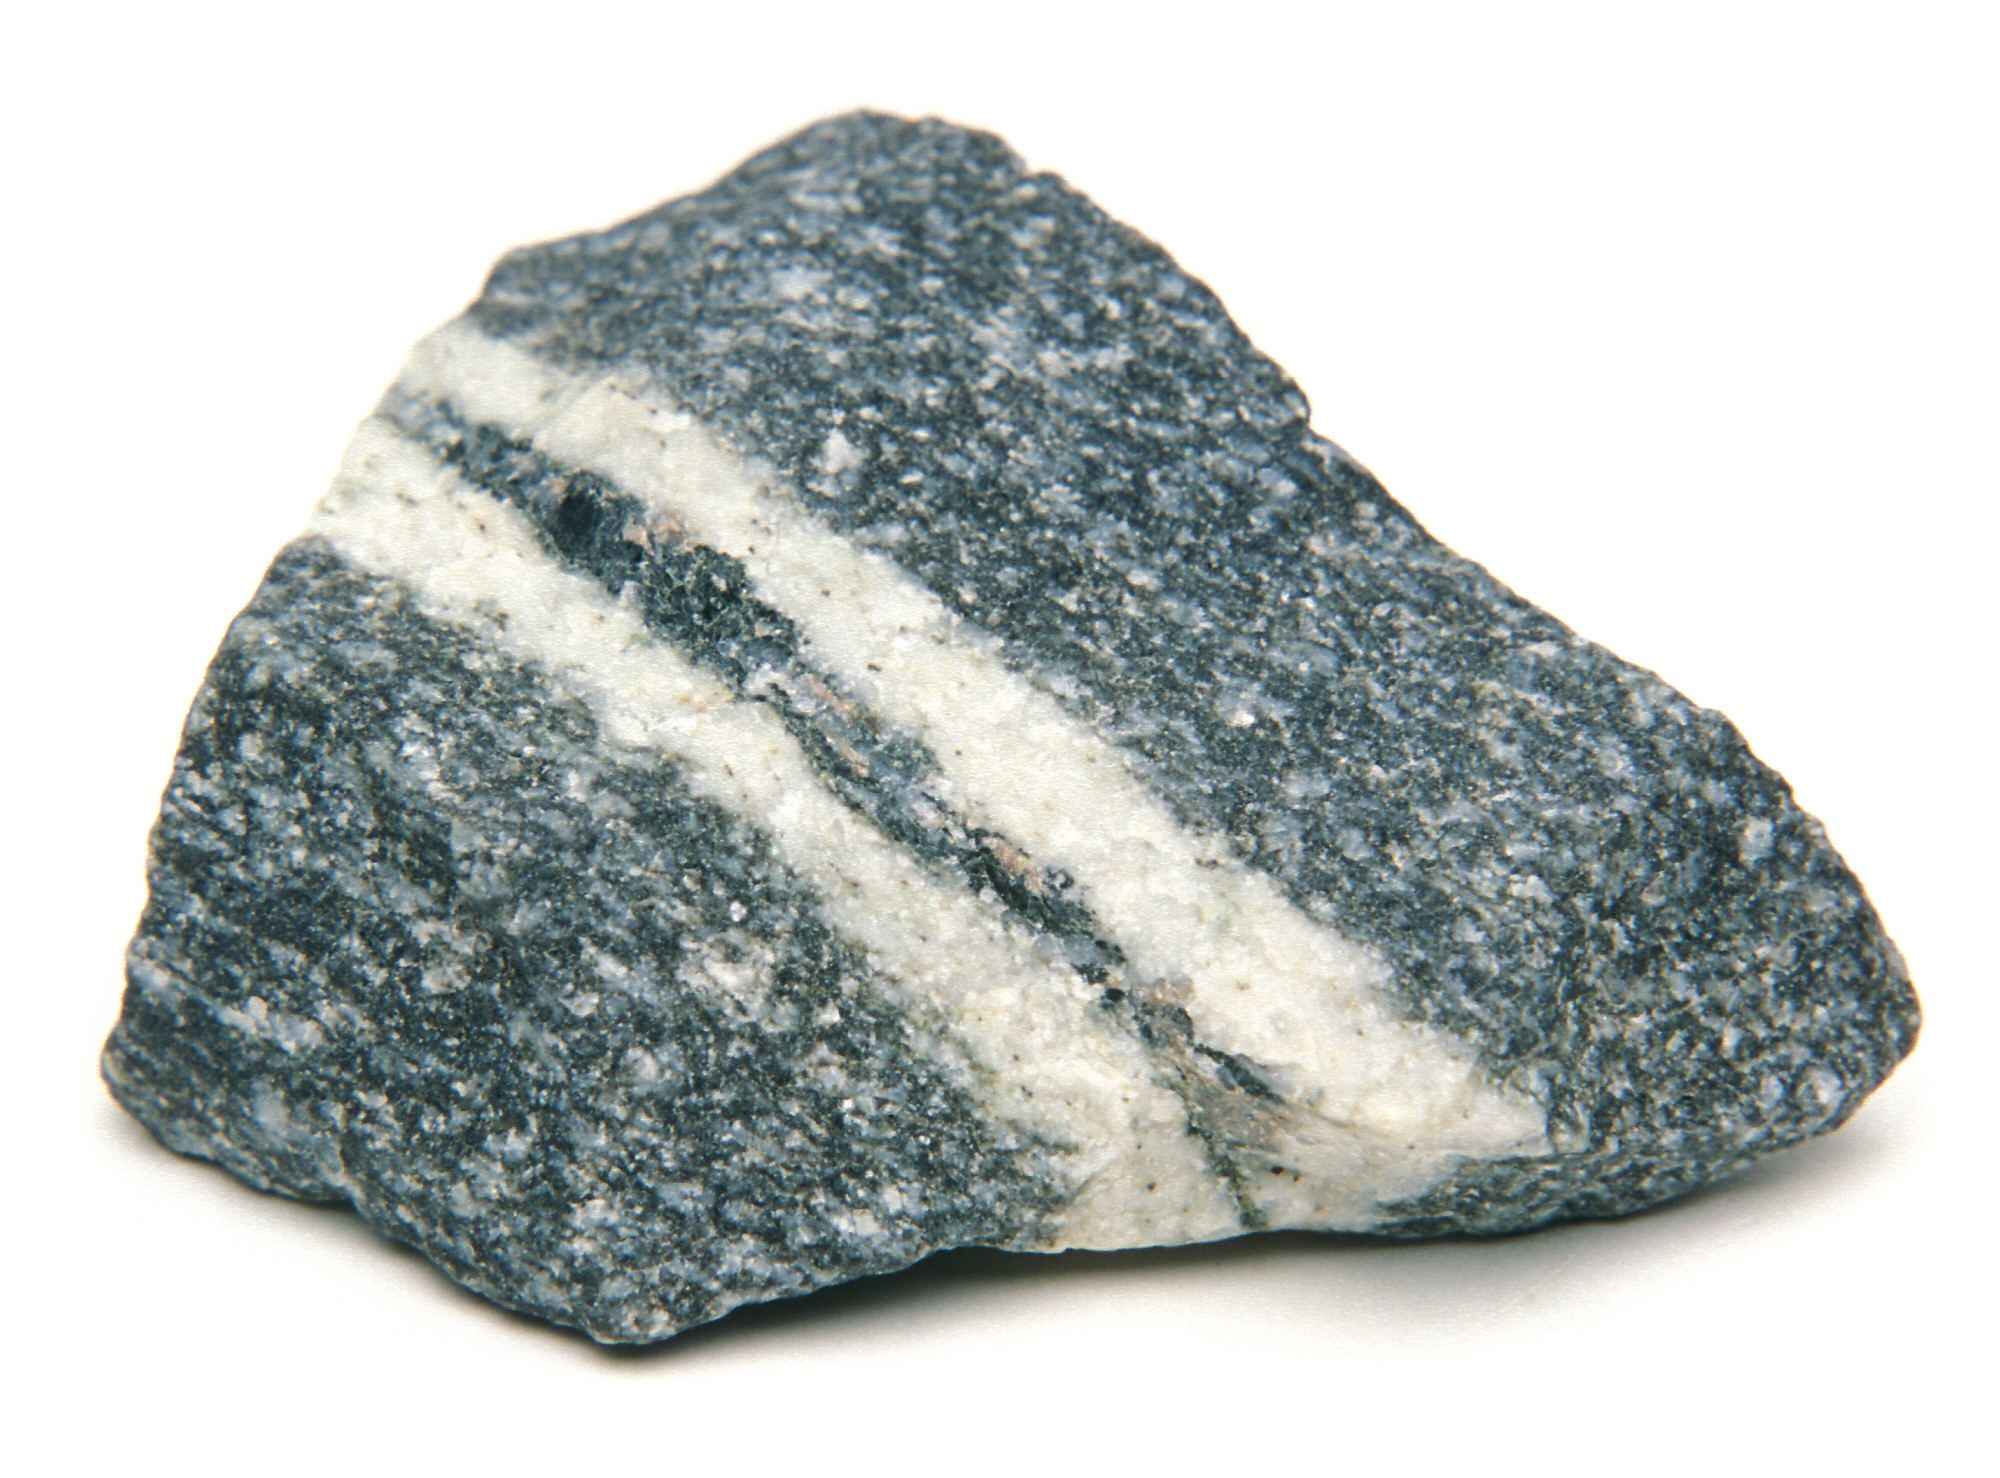 Gneiss Pronounced Quot Nice Quot Is A Kind Of Rock The Bands In